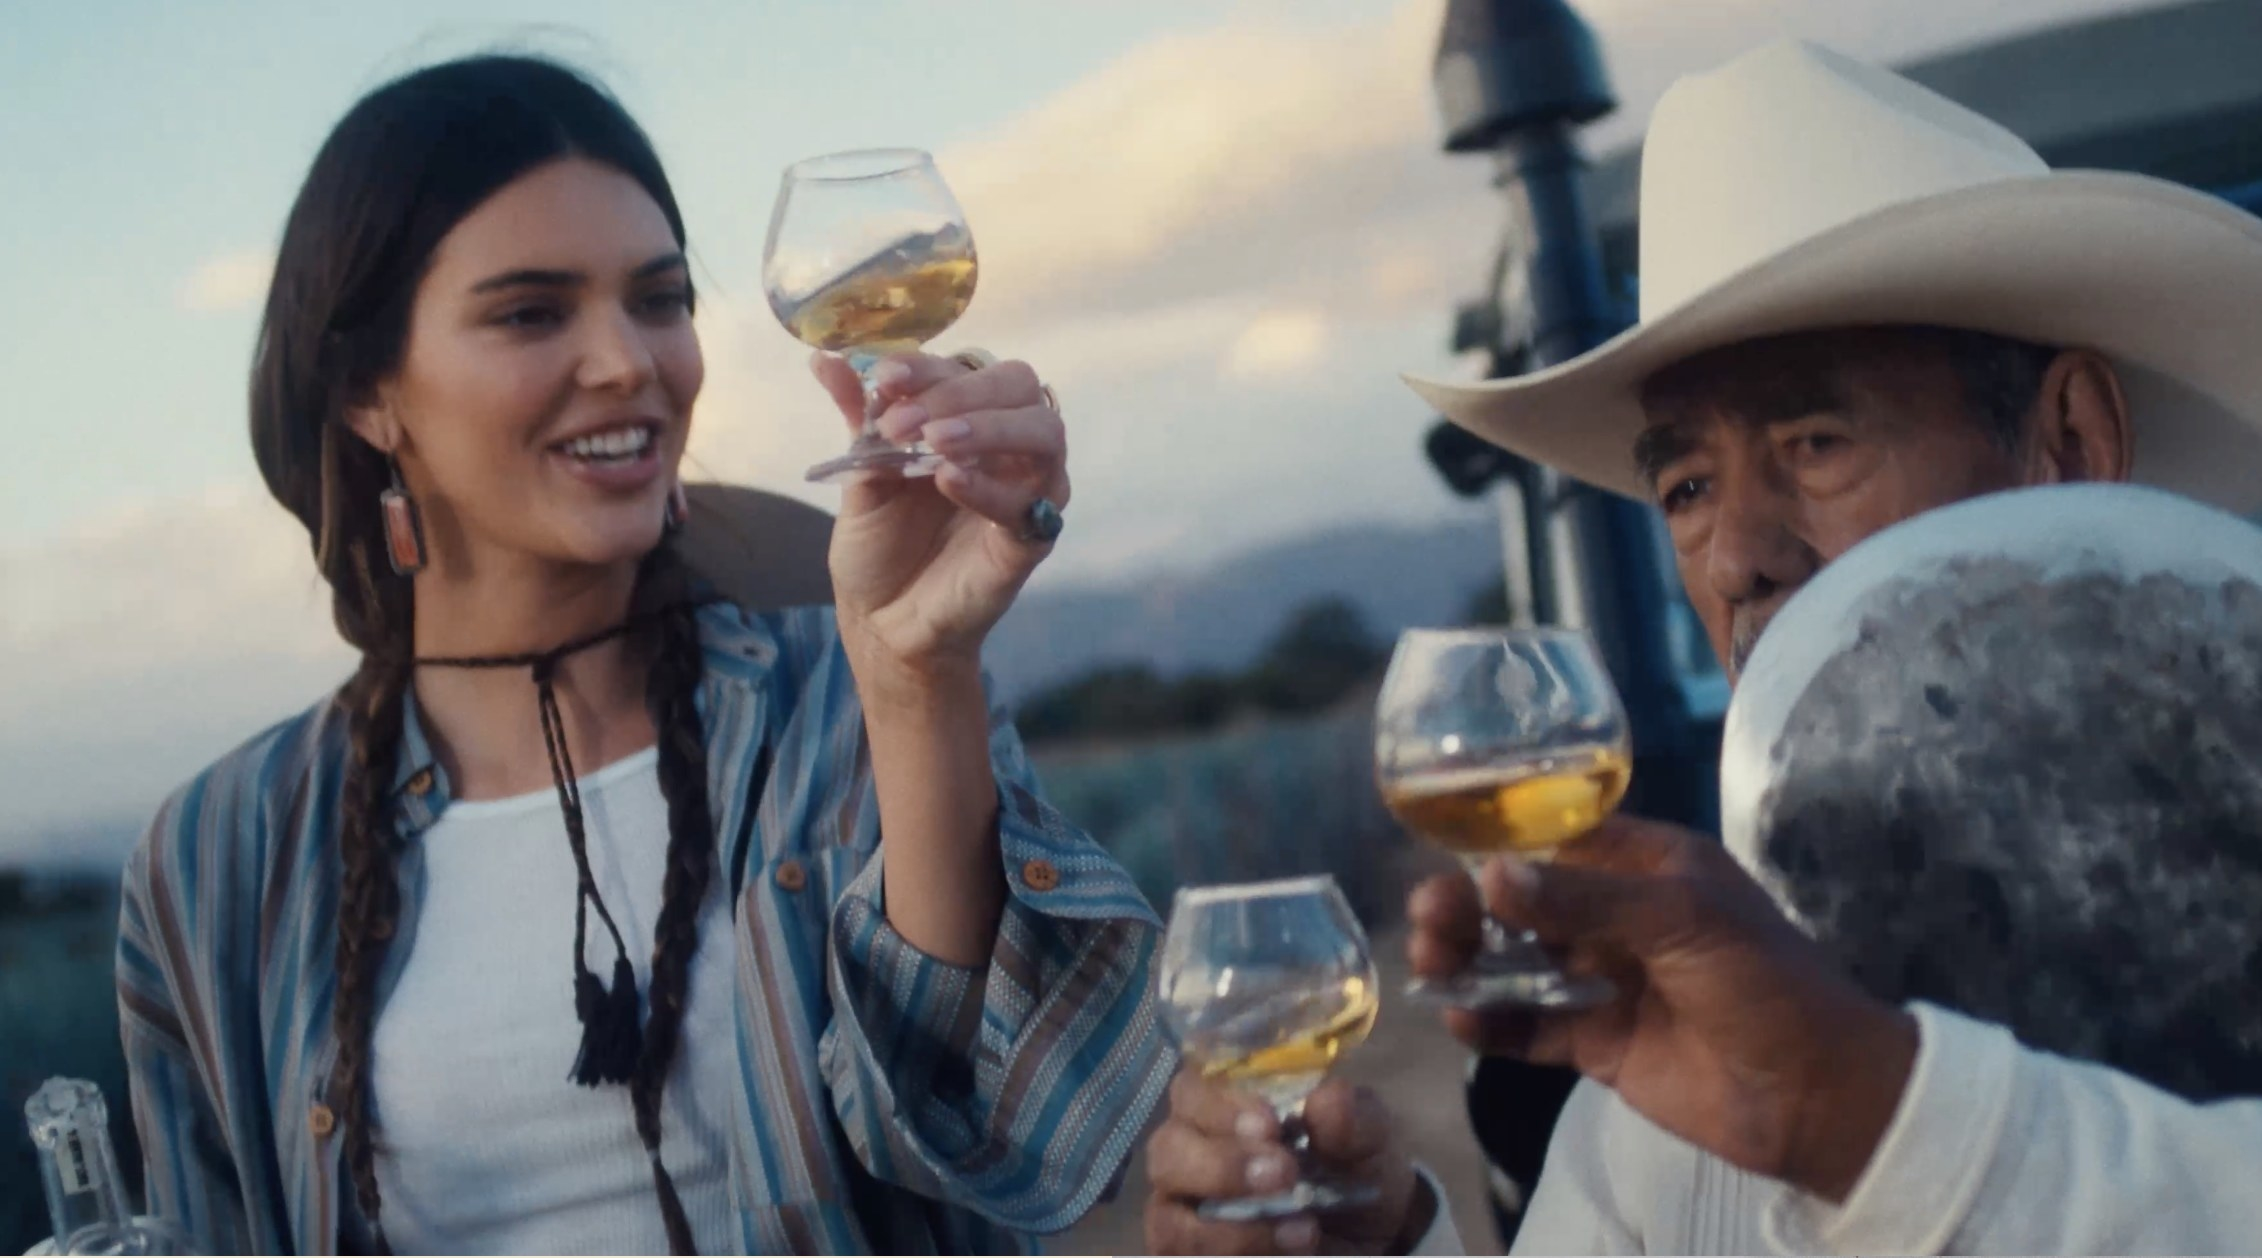 Kendall raises a glass with the farm workers